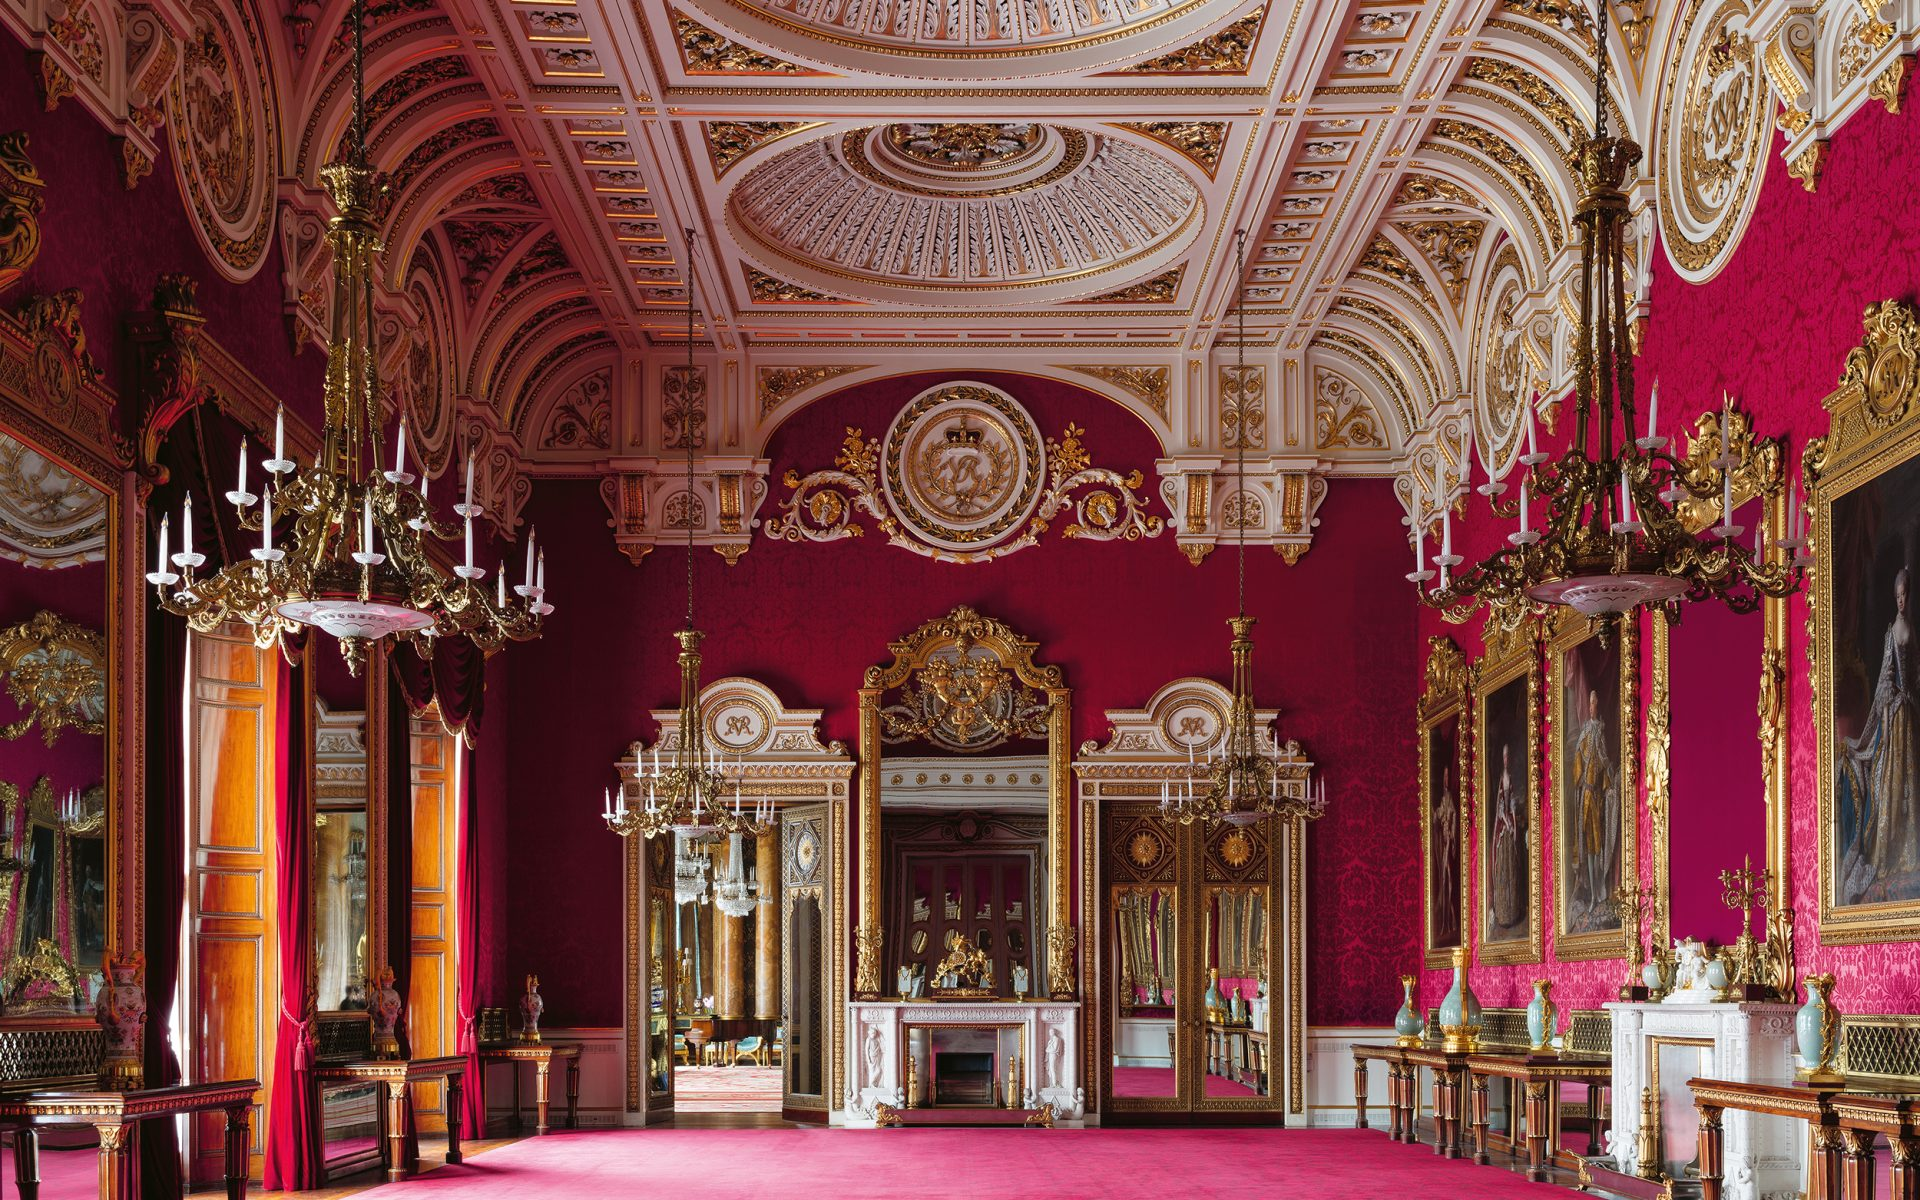 Get a Rare Glimpse of the Royal Family's Private Rooms at Buckingham Palace - Galerie